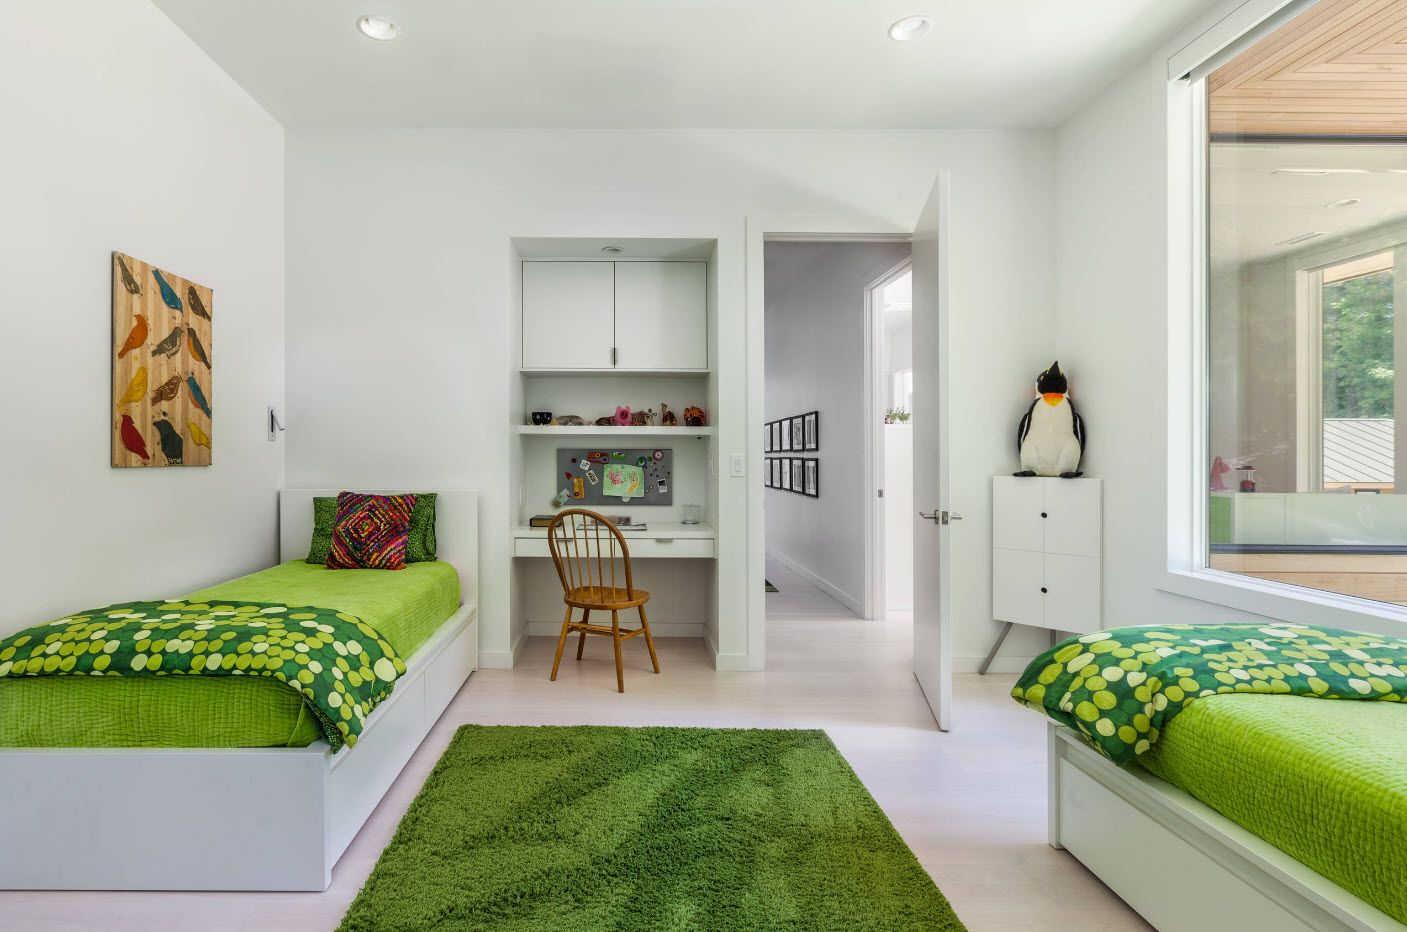 Green keynote in the bedrom's design